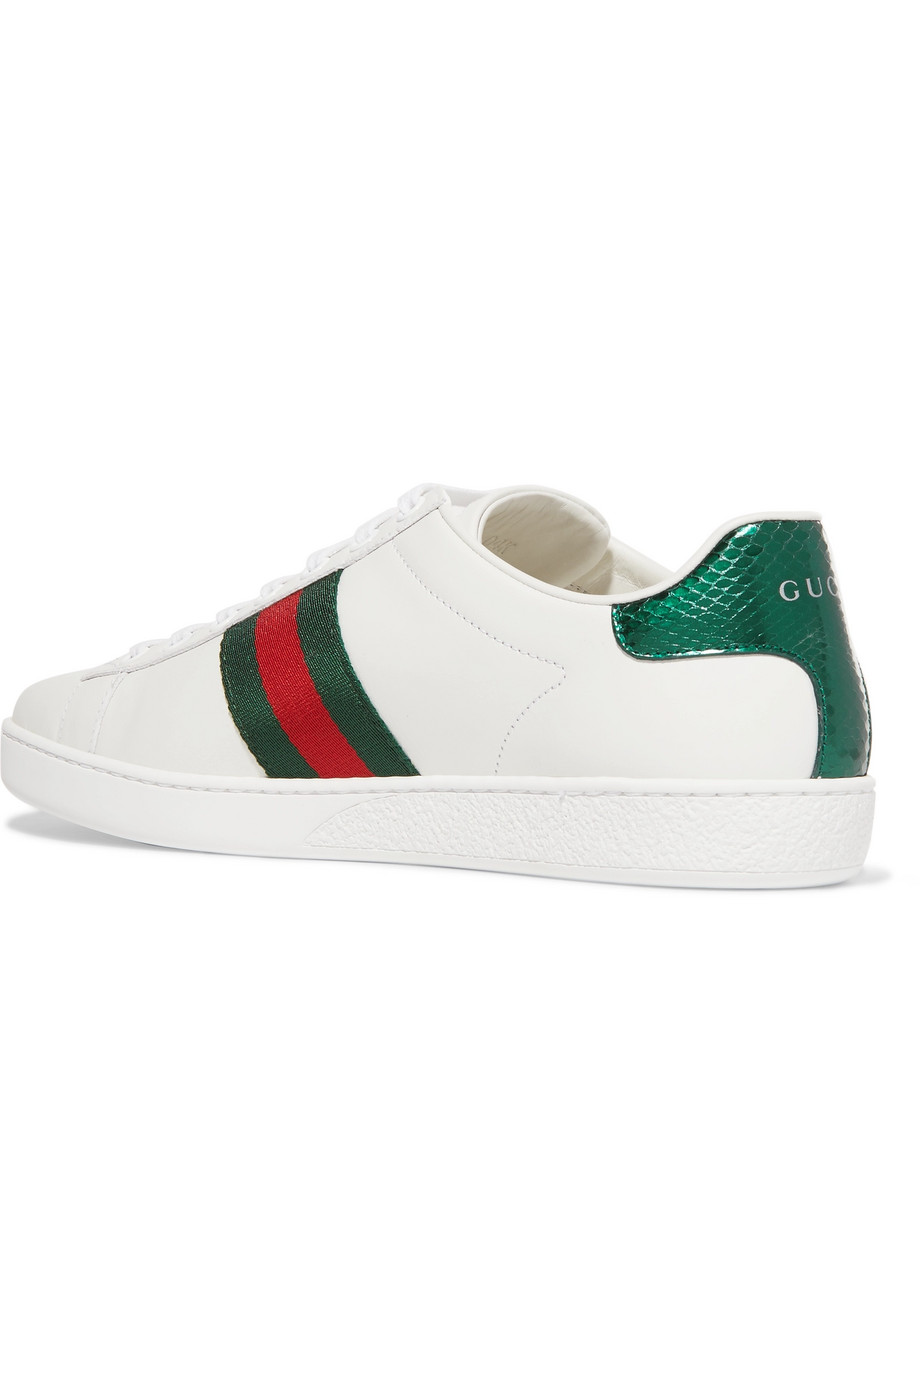 Gucci Ace Embroidered Sneaker — Evelyn